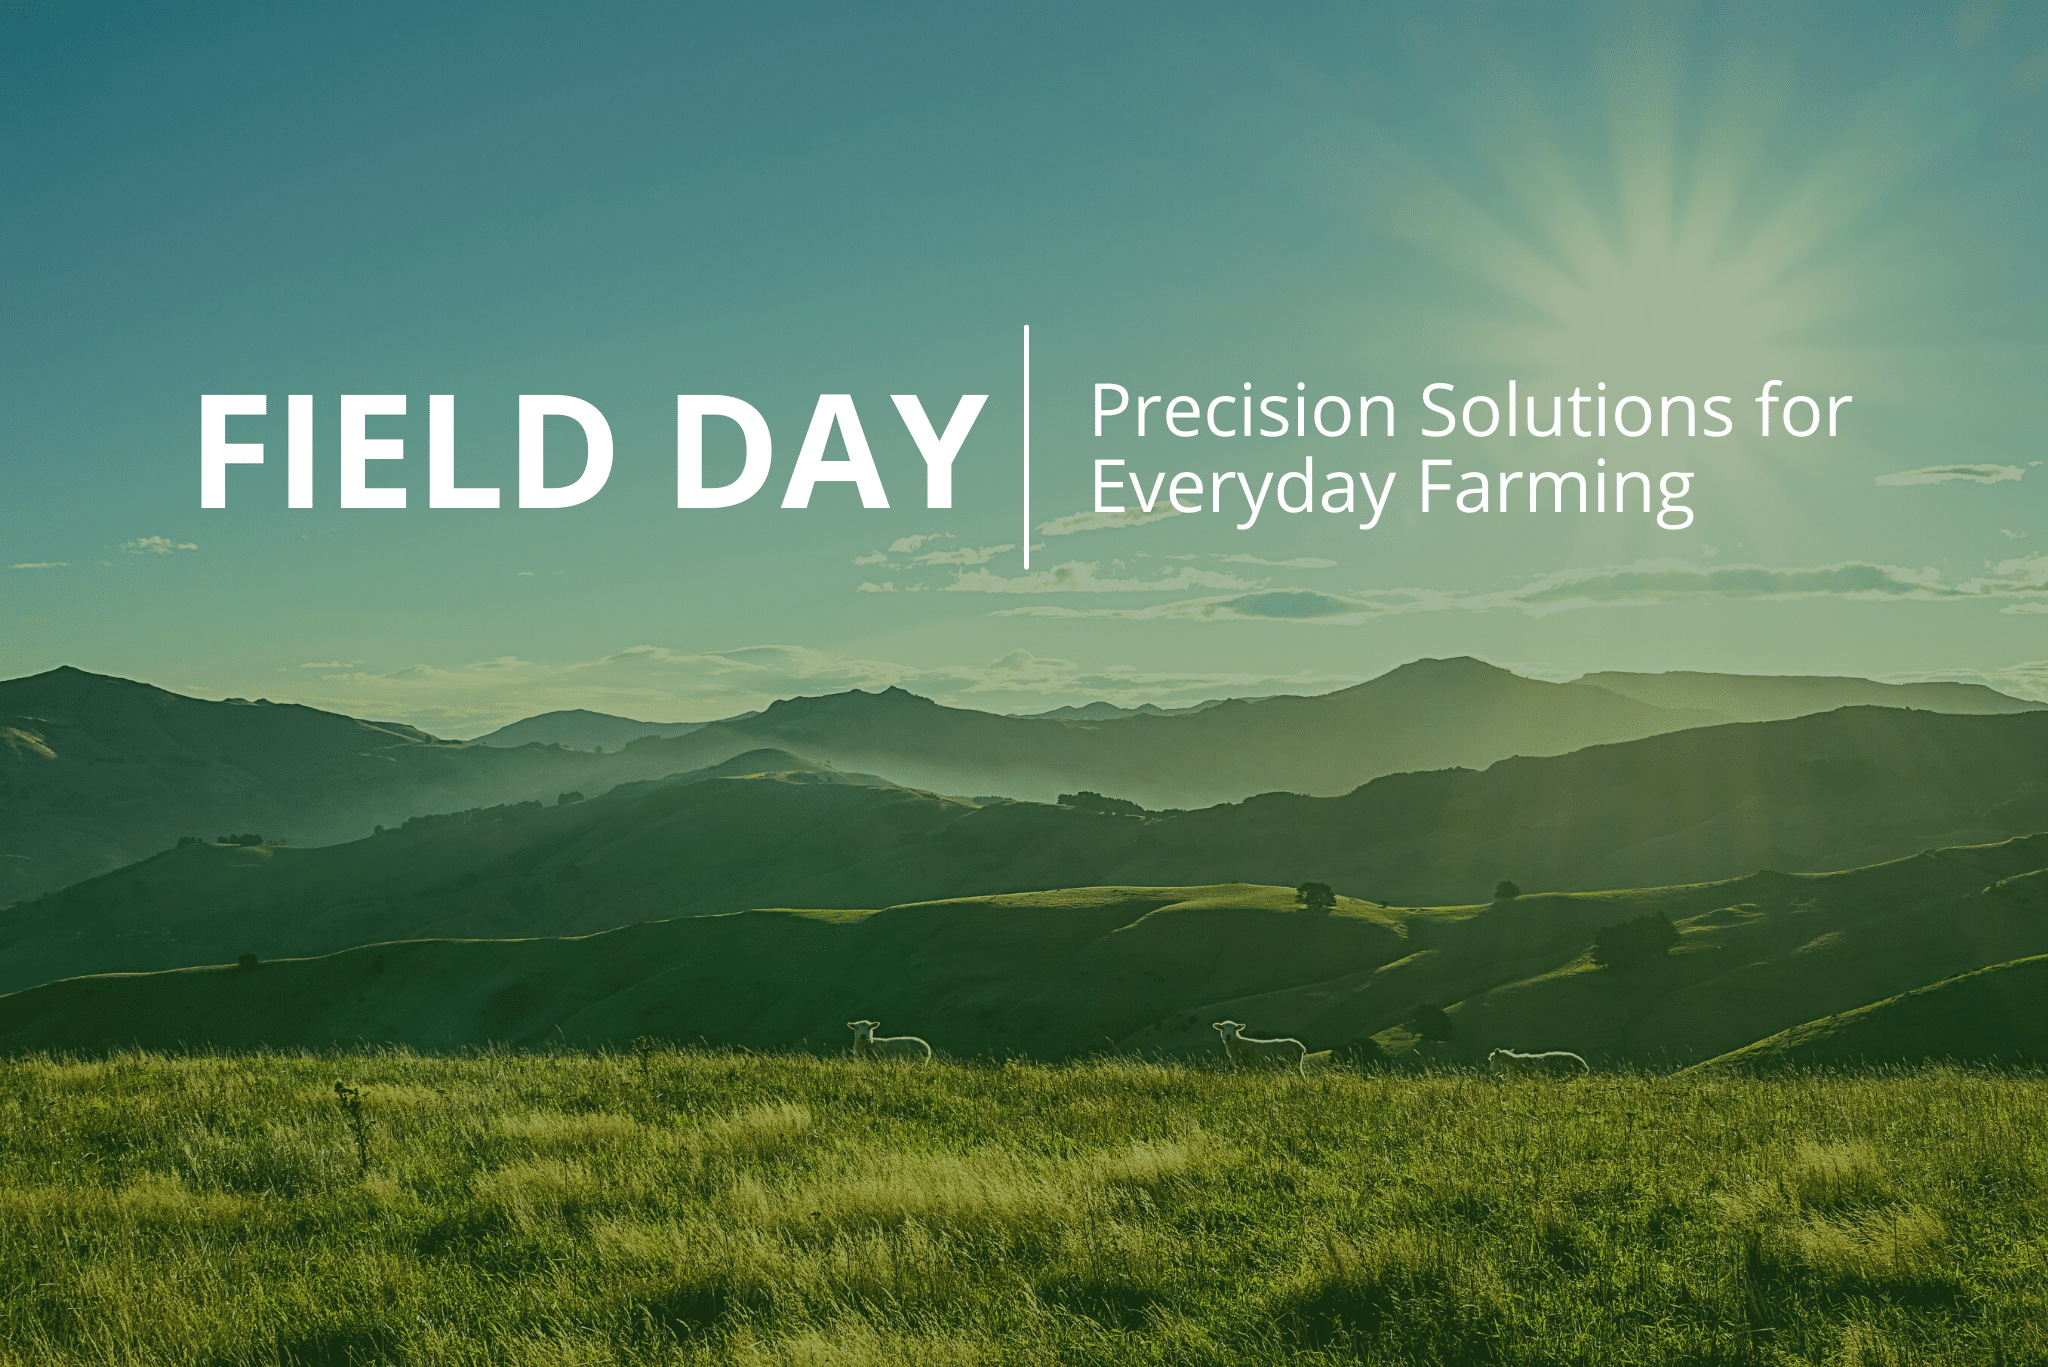 Website home page header image - Field Day October 2021 (2048 x 1367 px)